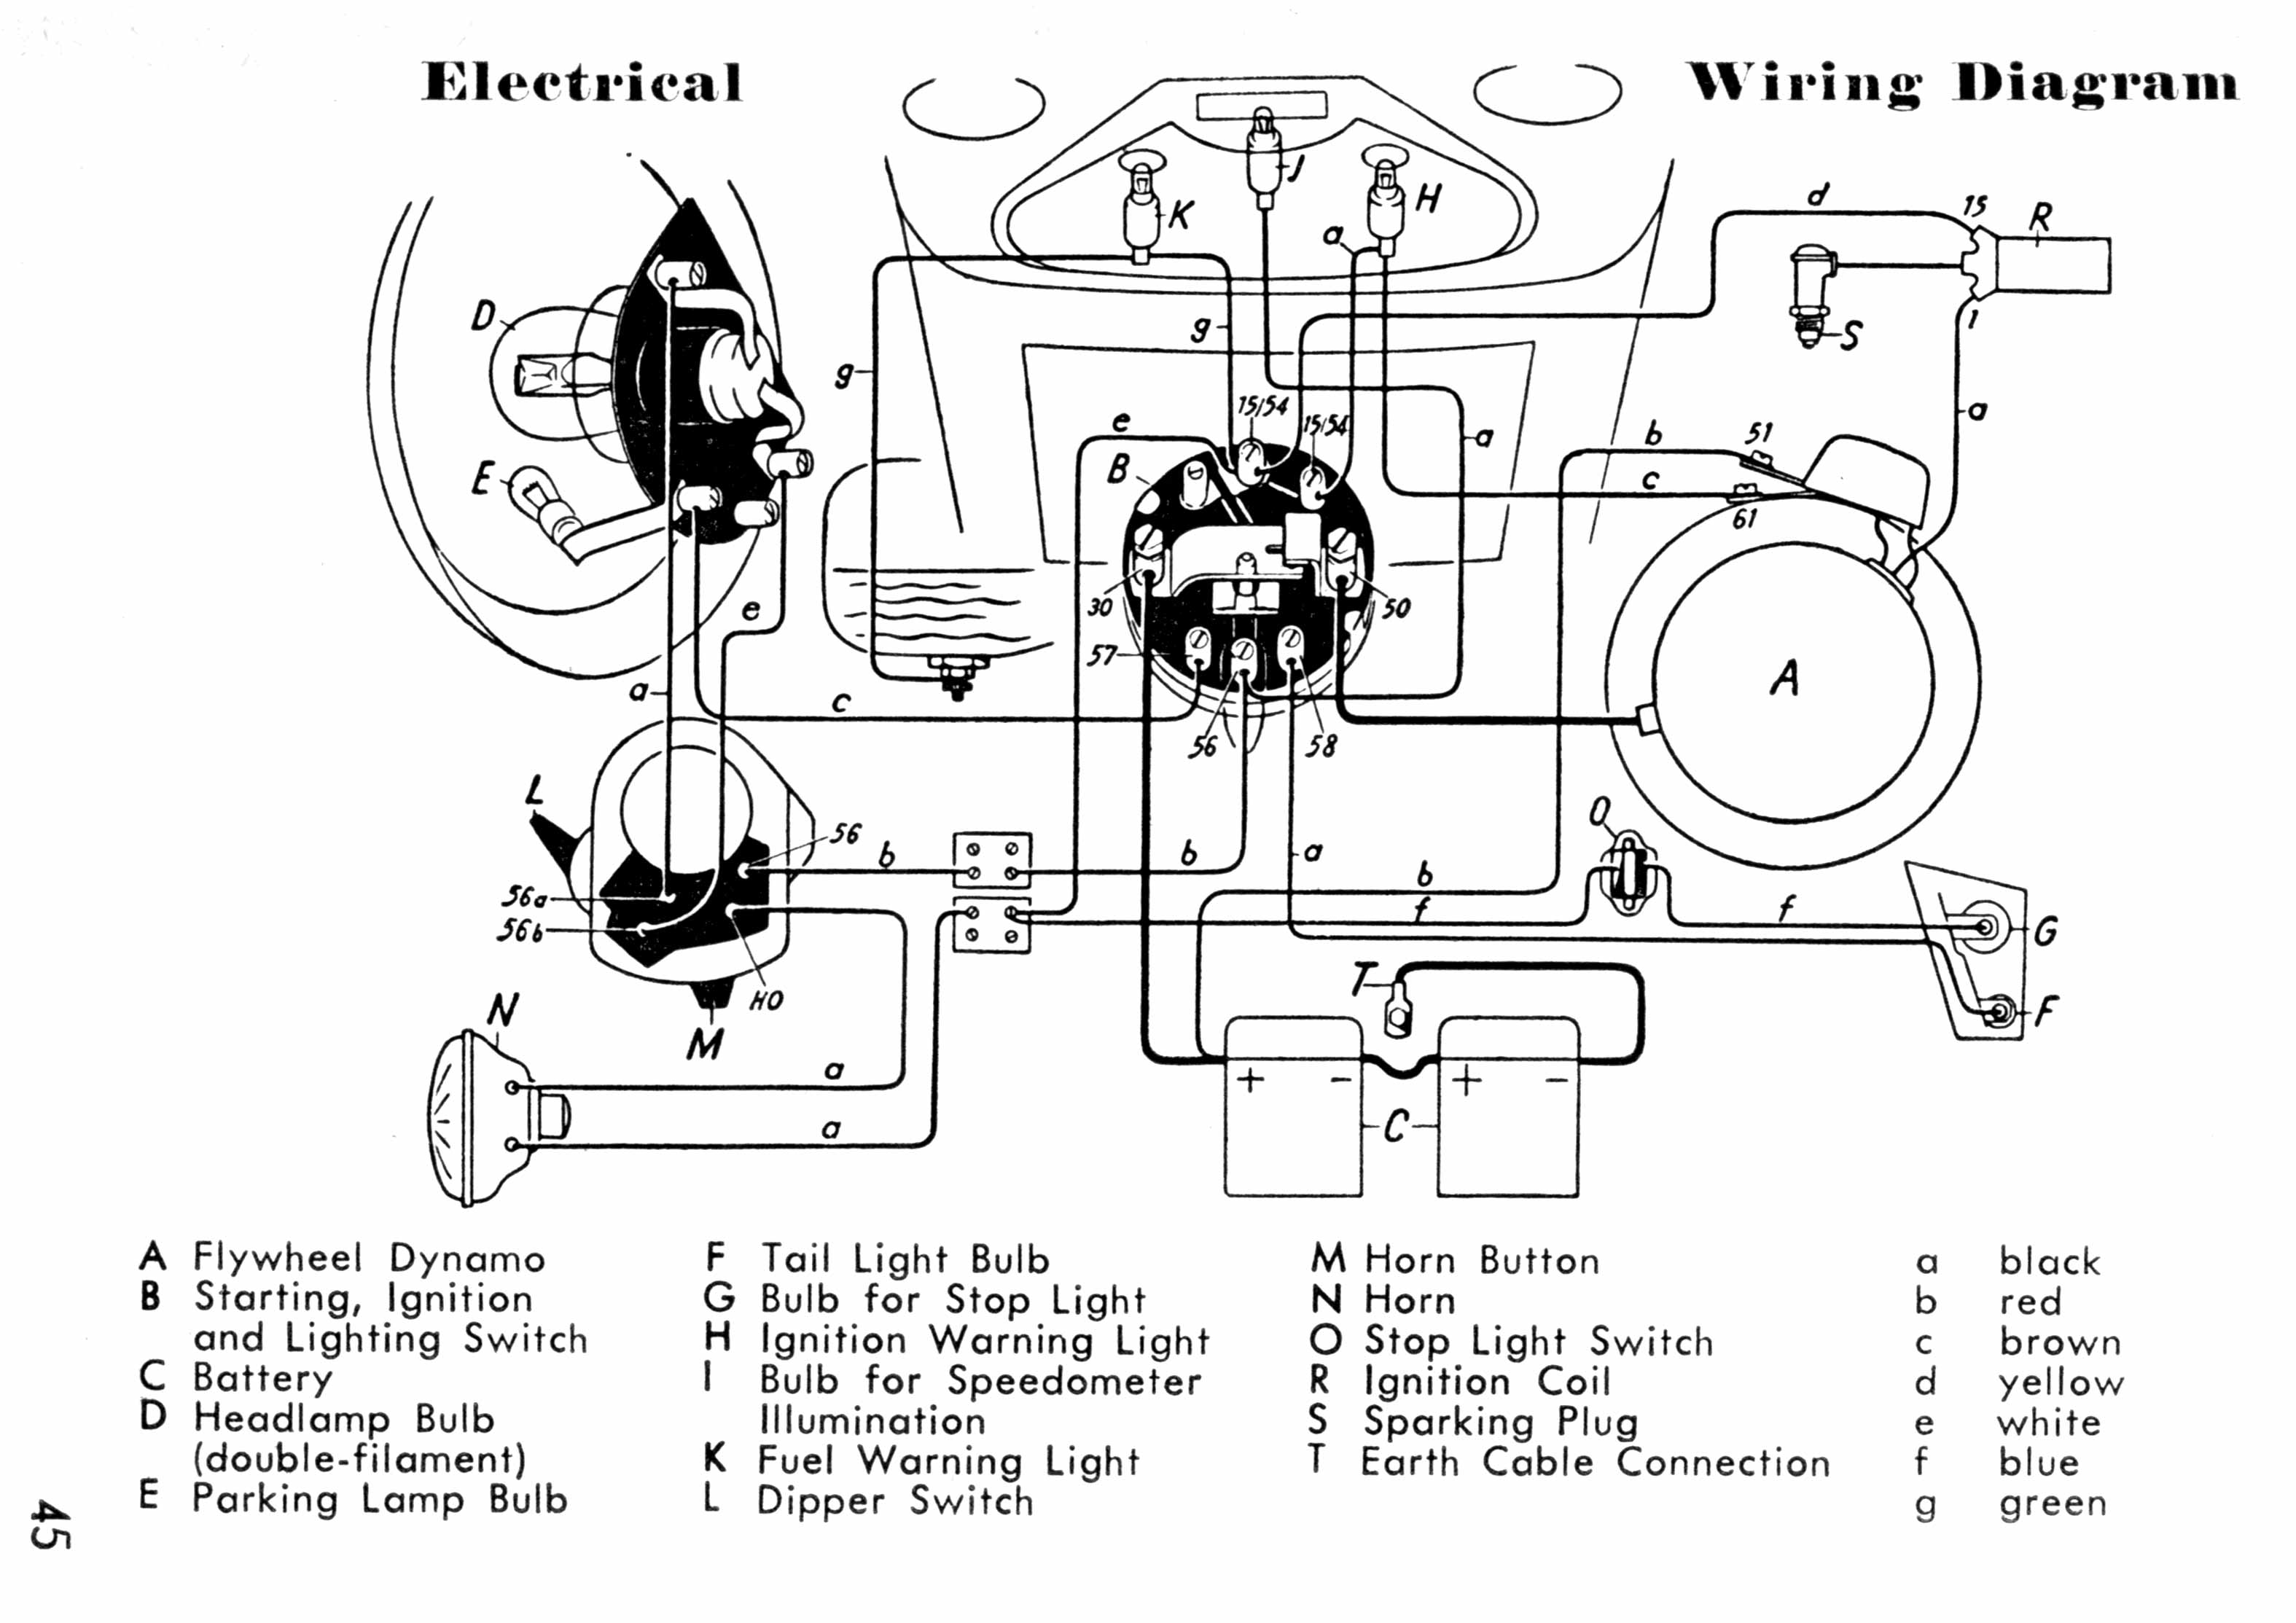 wiring diagram of electric scooter wiring image diagram electric scooter wiring electric scooter on wiring diagram of electric scooter